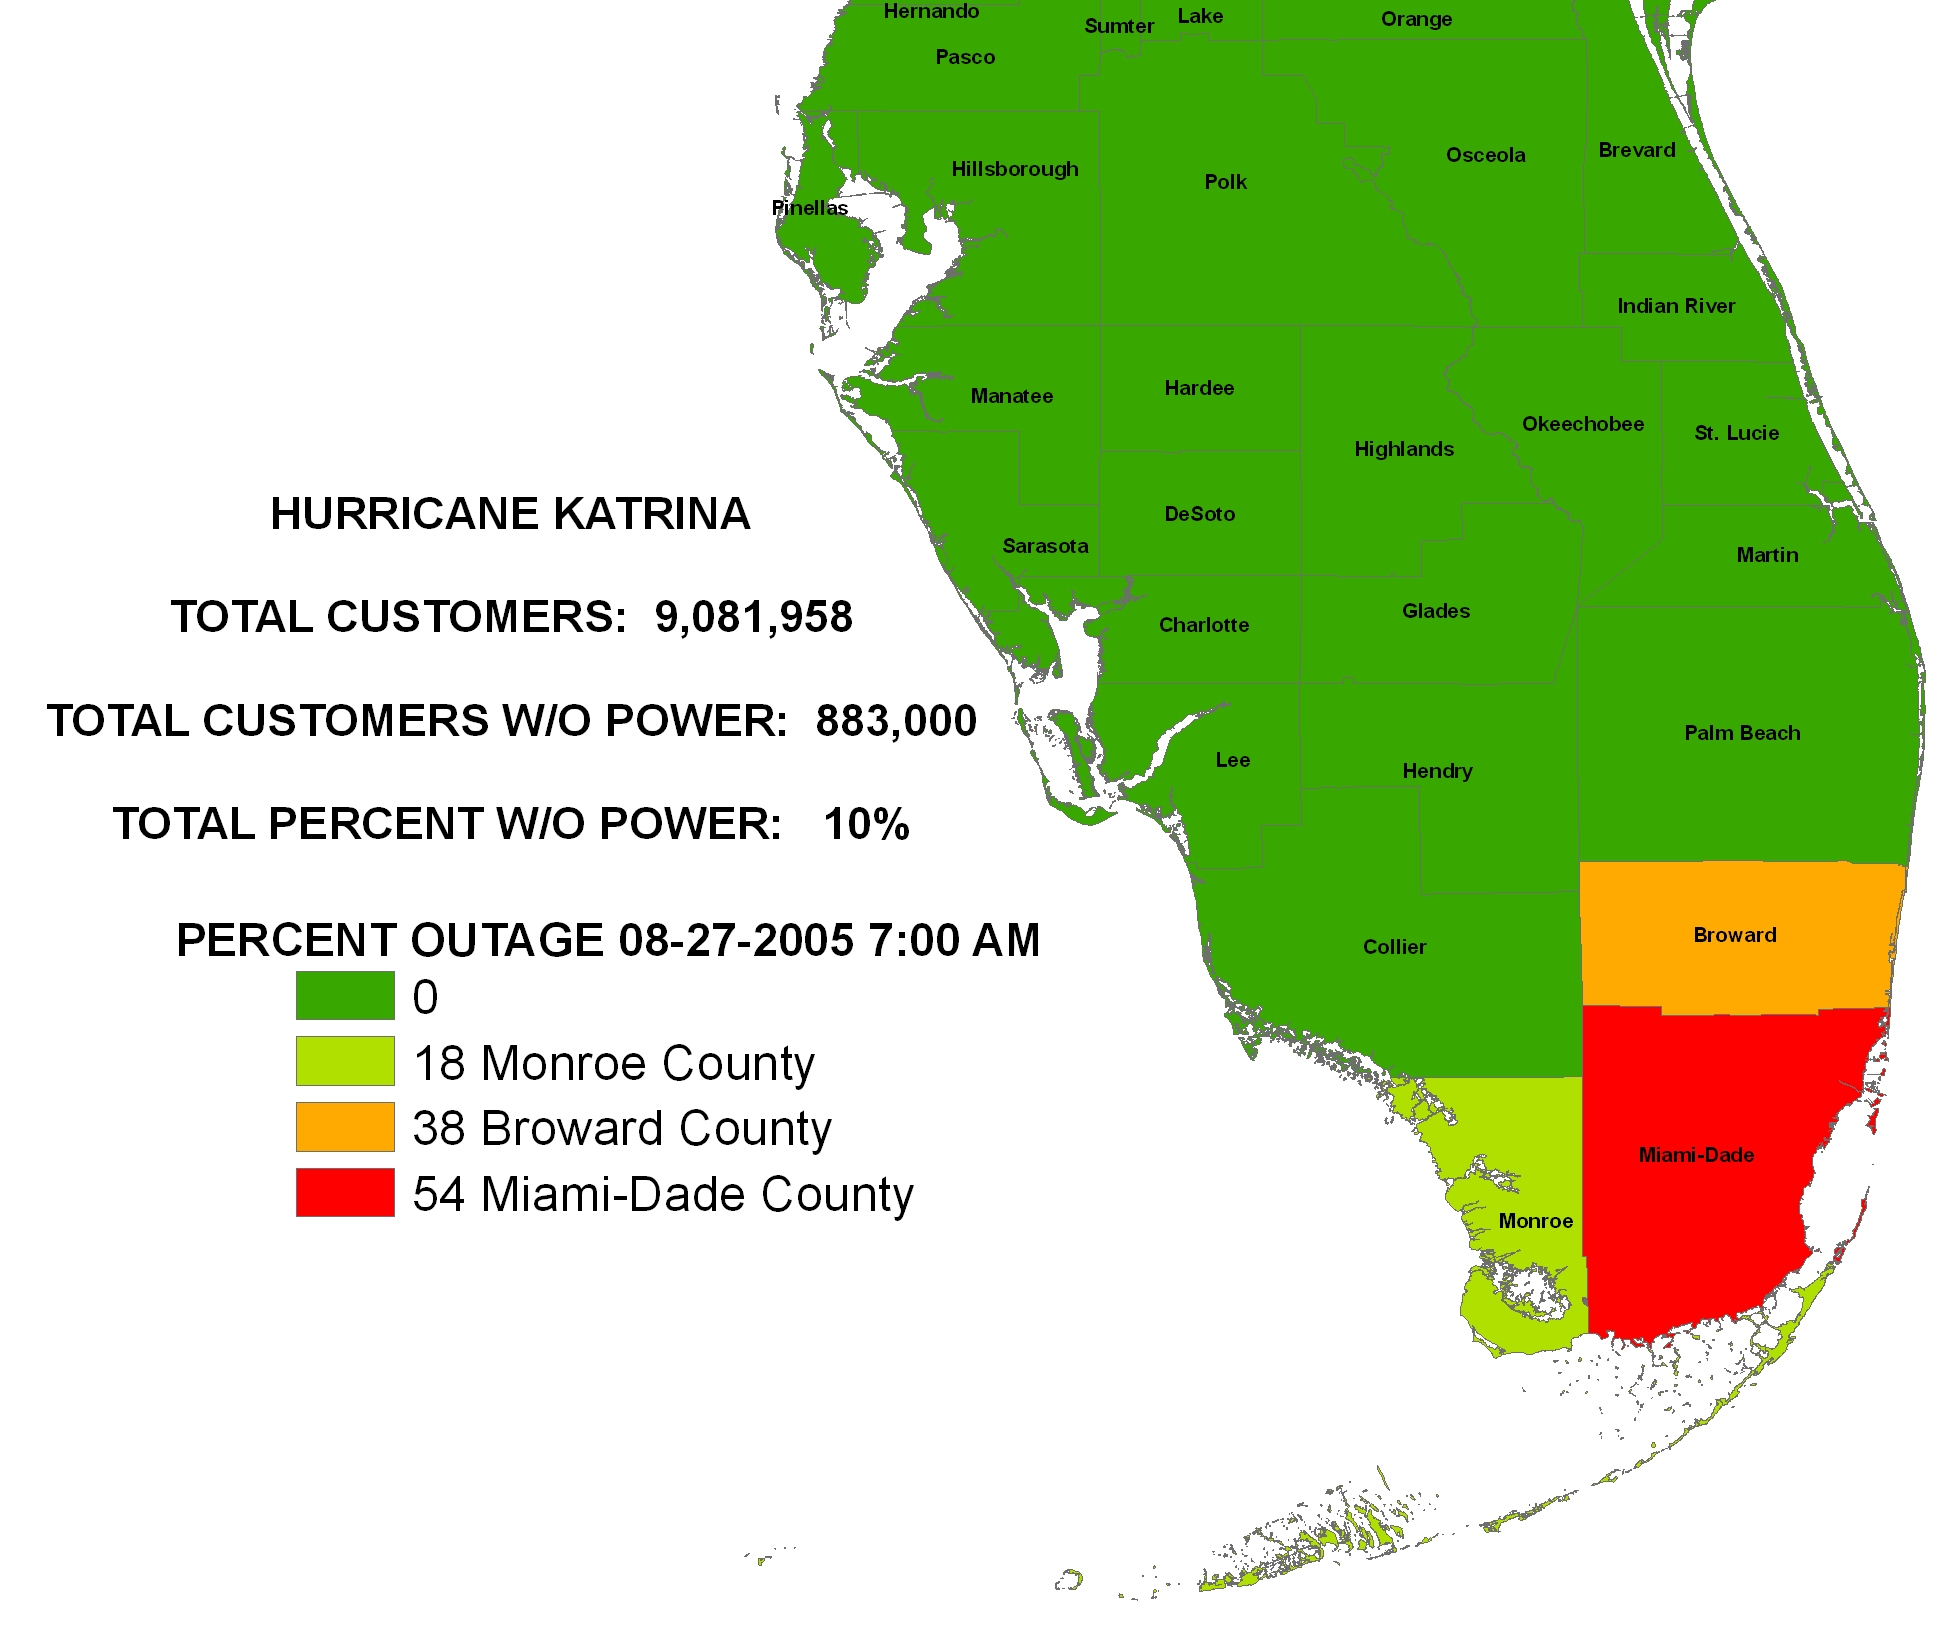 Iser - Hurricane Katrina - Florida Power Outage Map